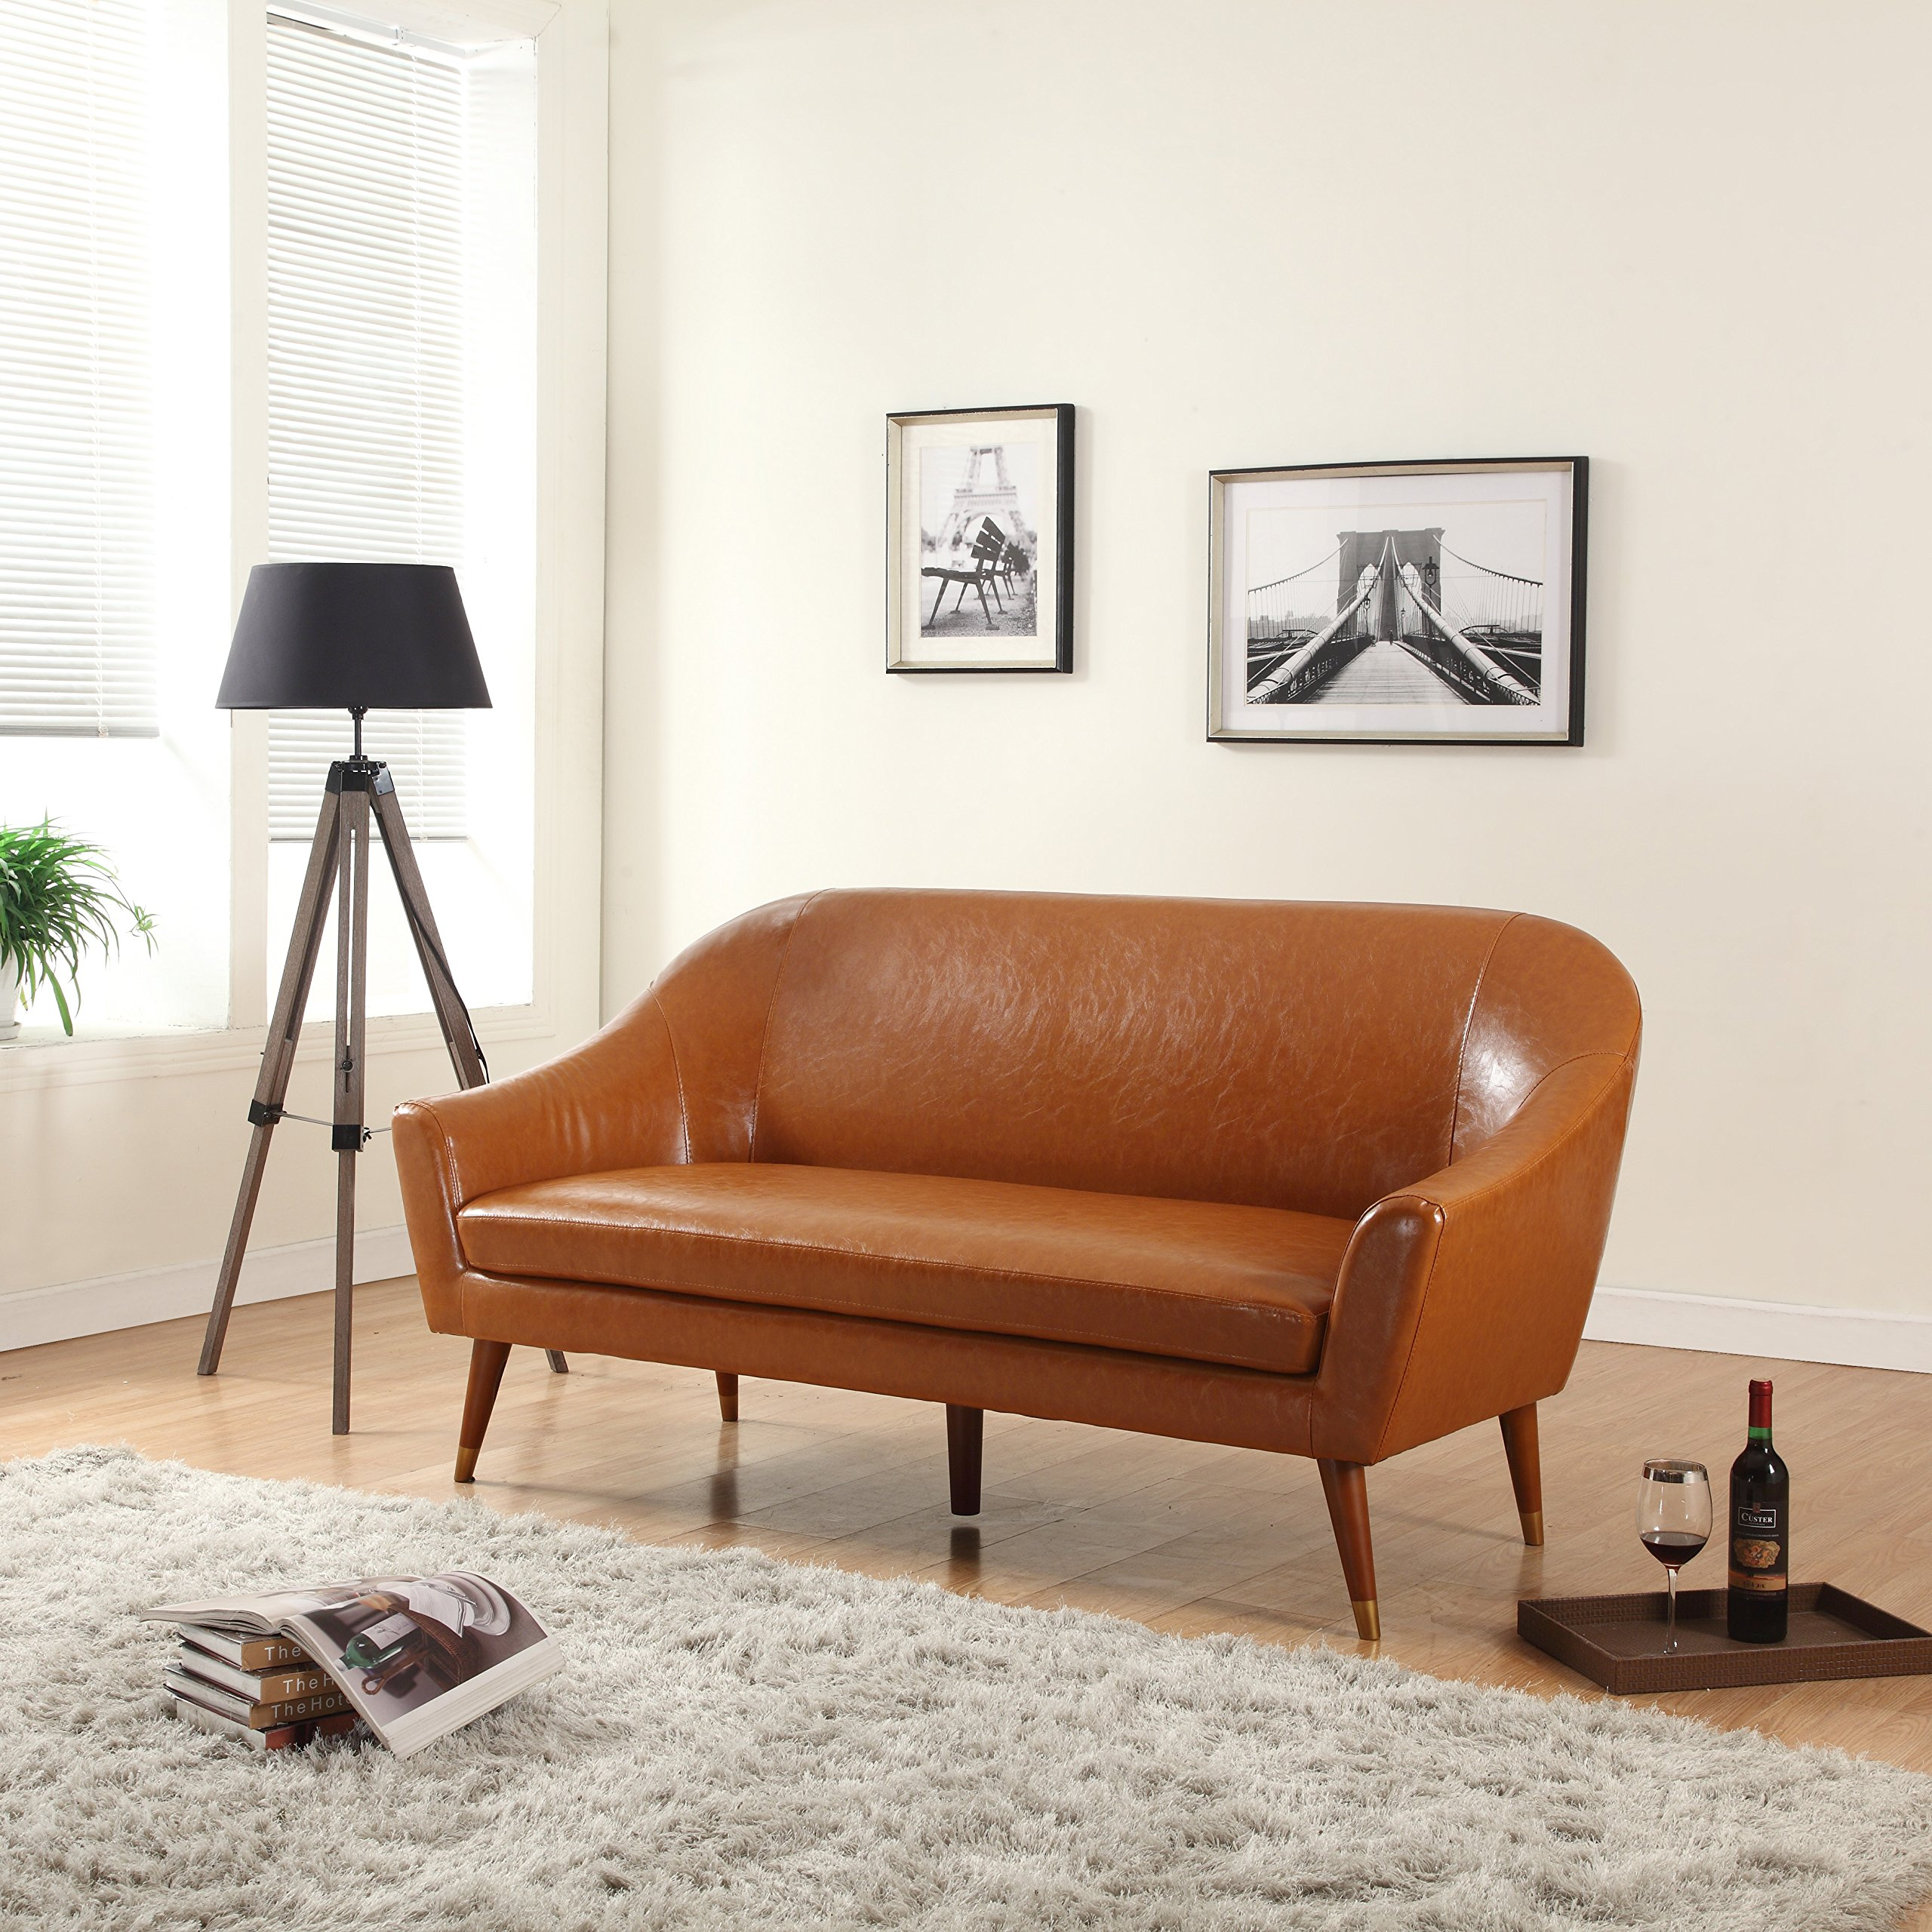 Modern Sofa Chair Designs: Mid Century Modern Sofa